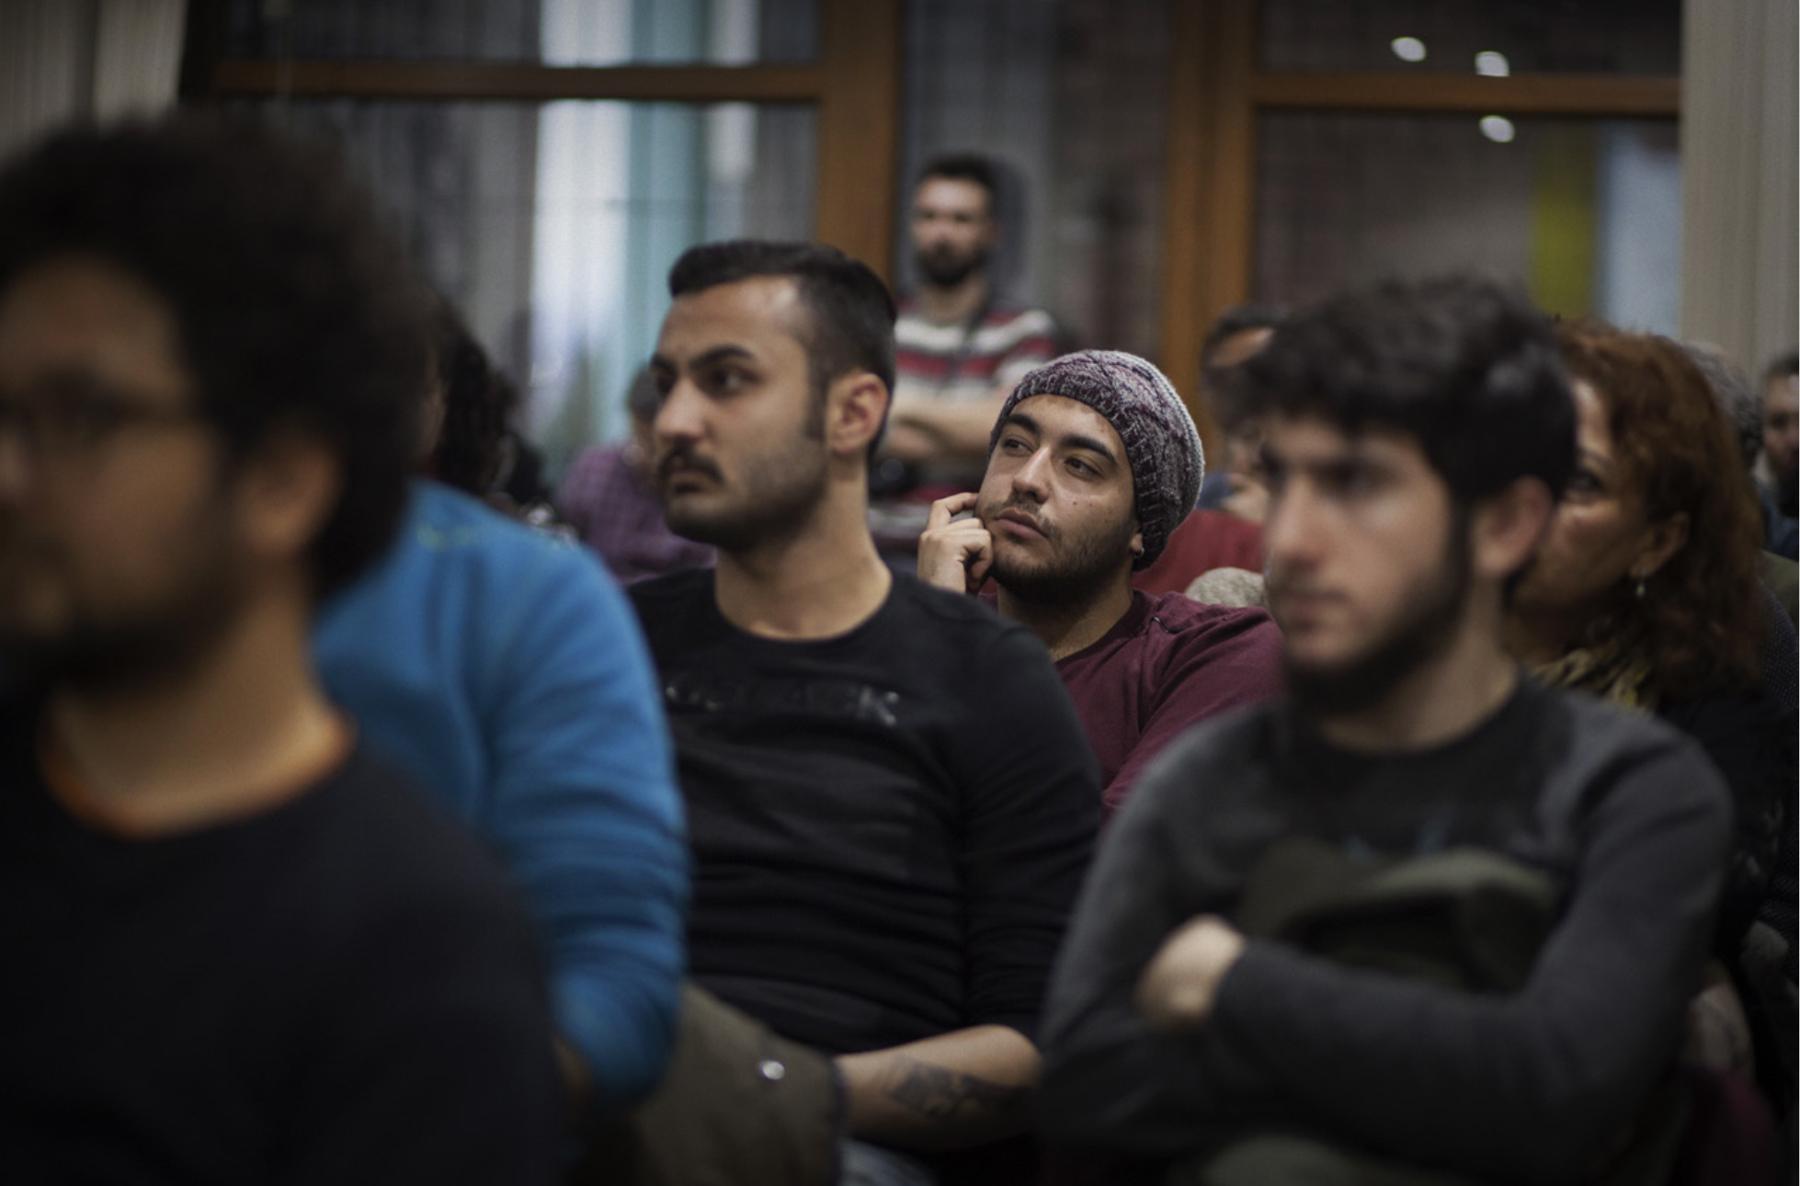 A weekly seminar held by academics dismissed from the  dismissed from the University of Kocaeli.